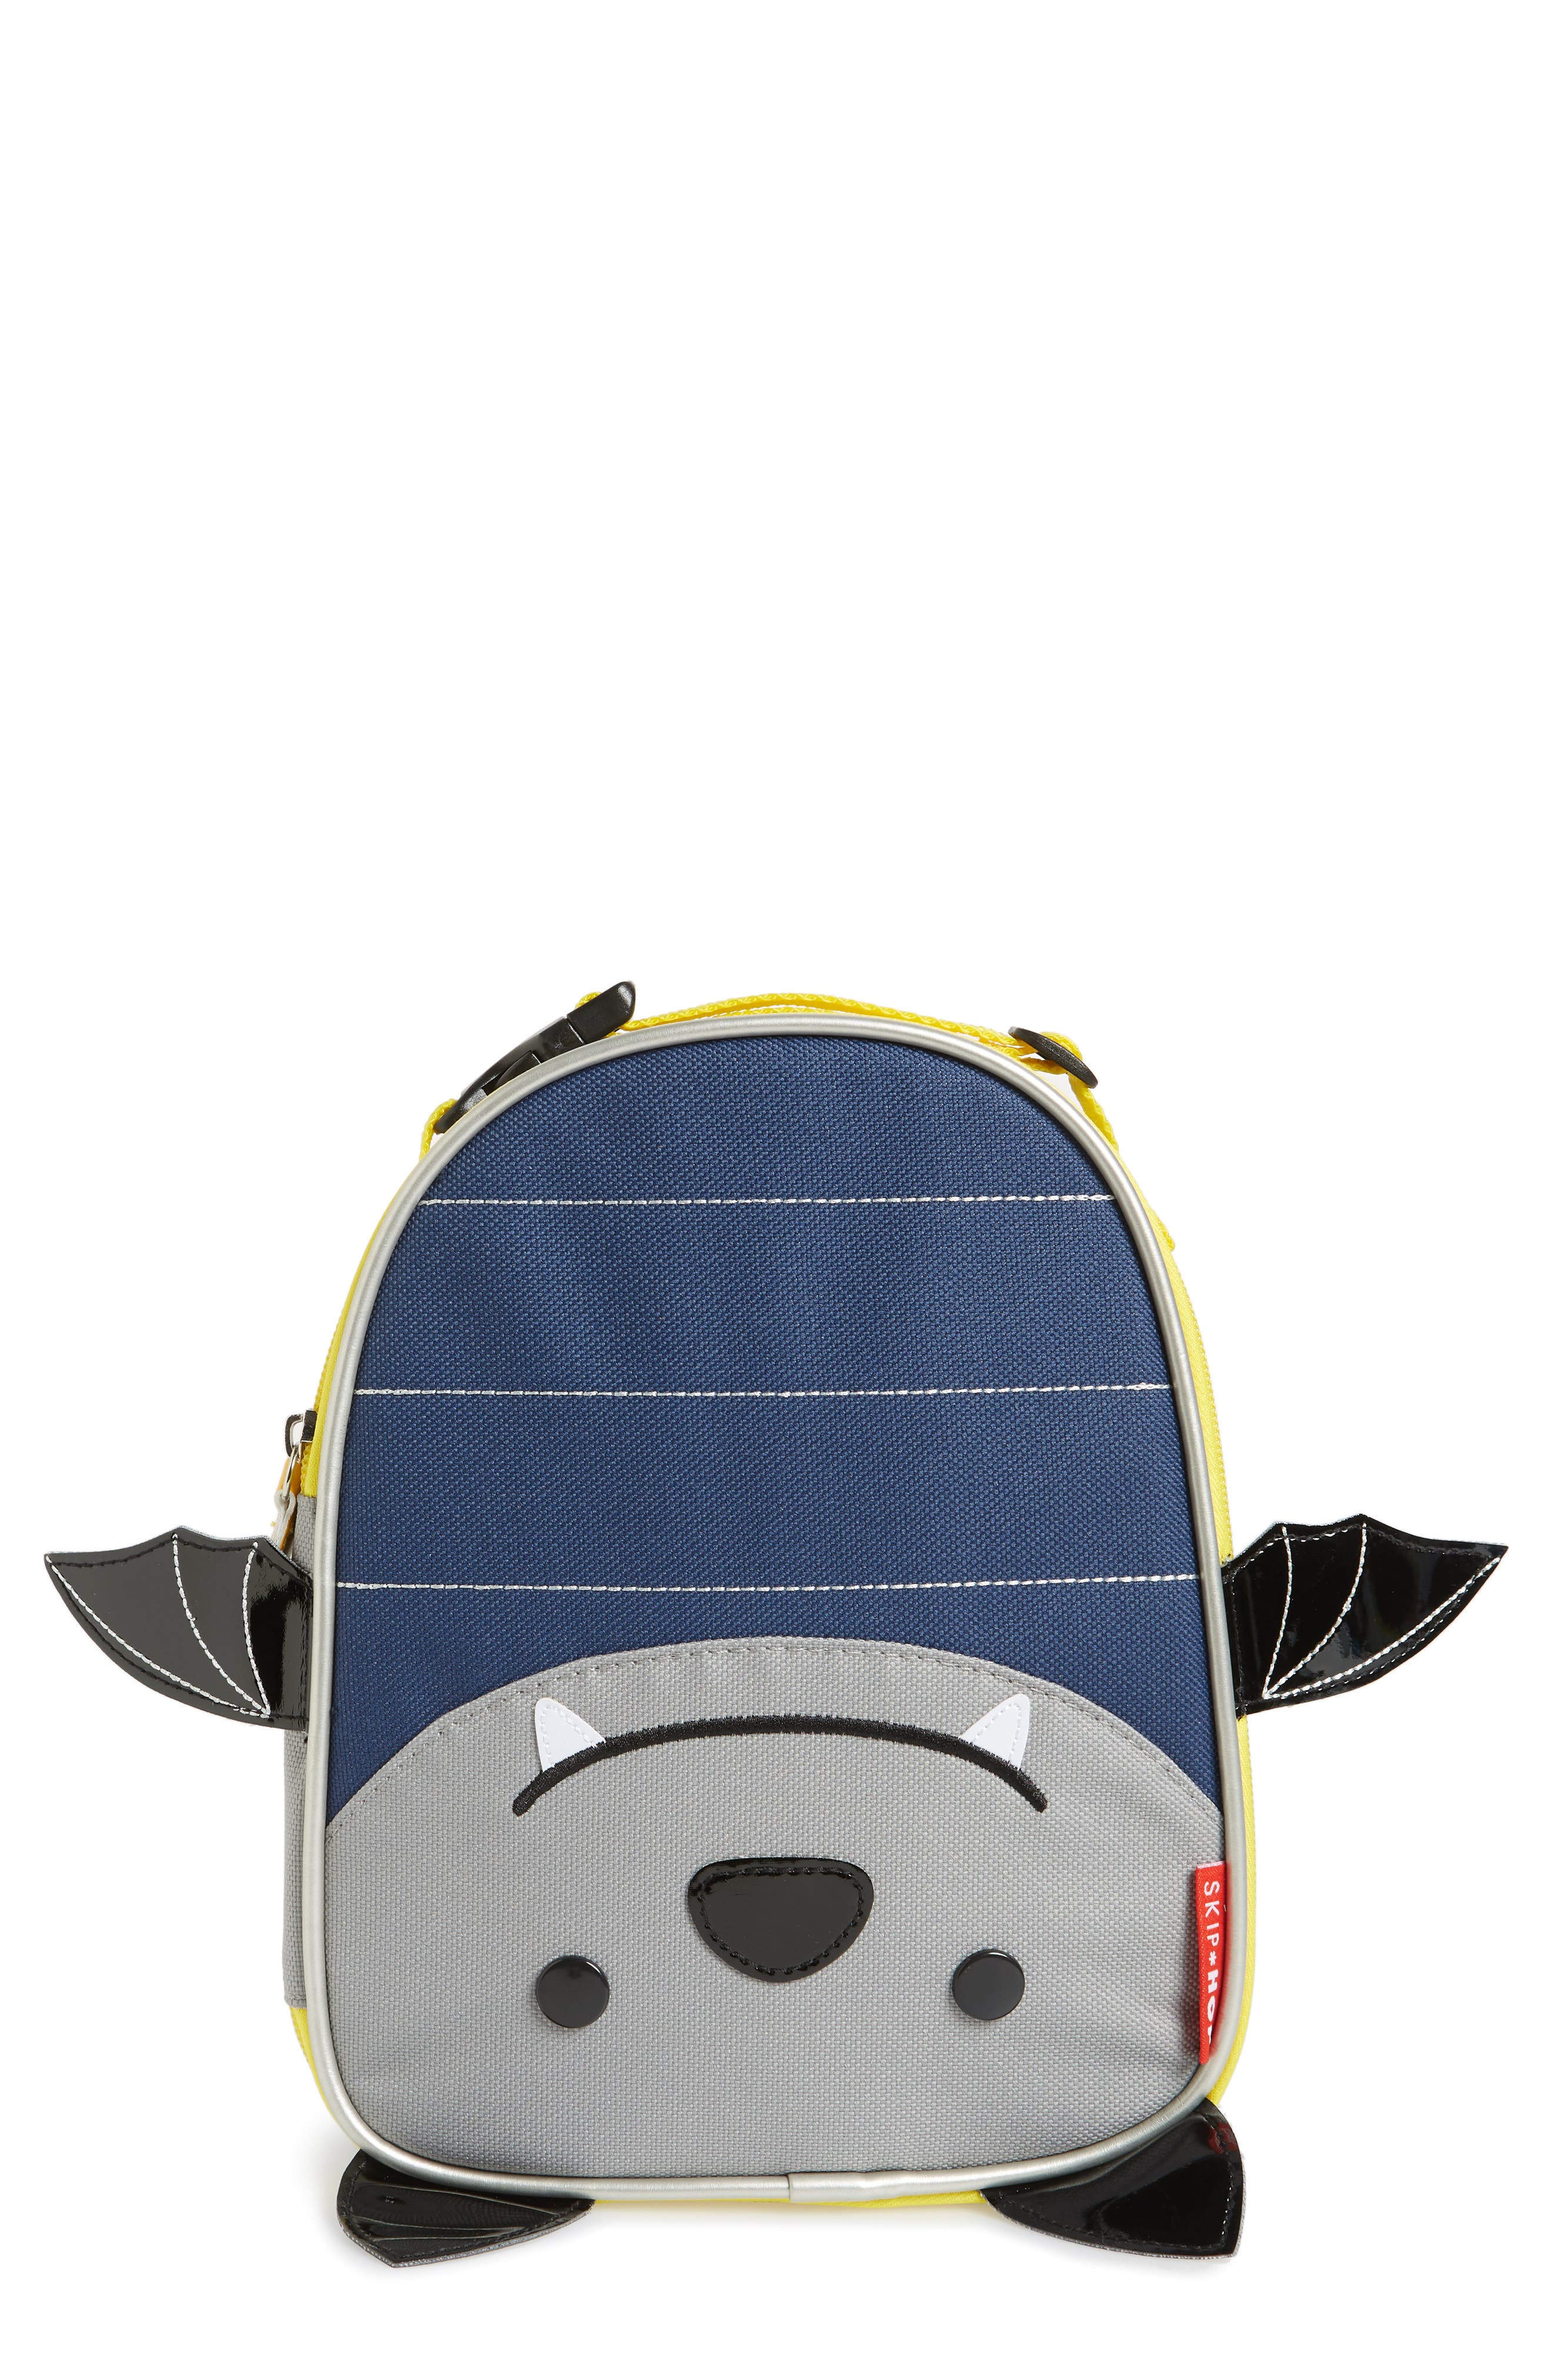 Zoo Lunchie - Bat Insulated Lunch Bag, Main, color, NAVY BLUE